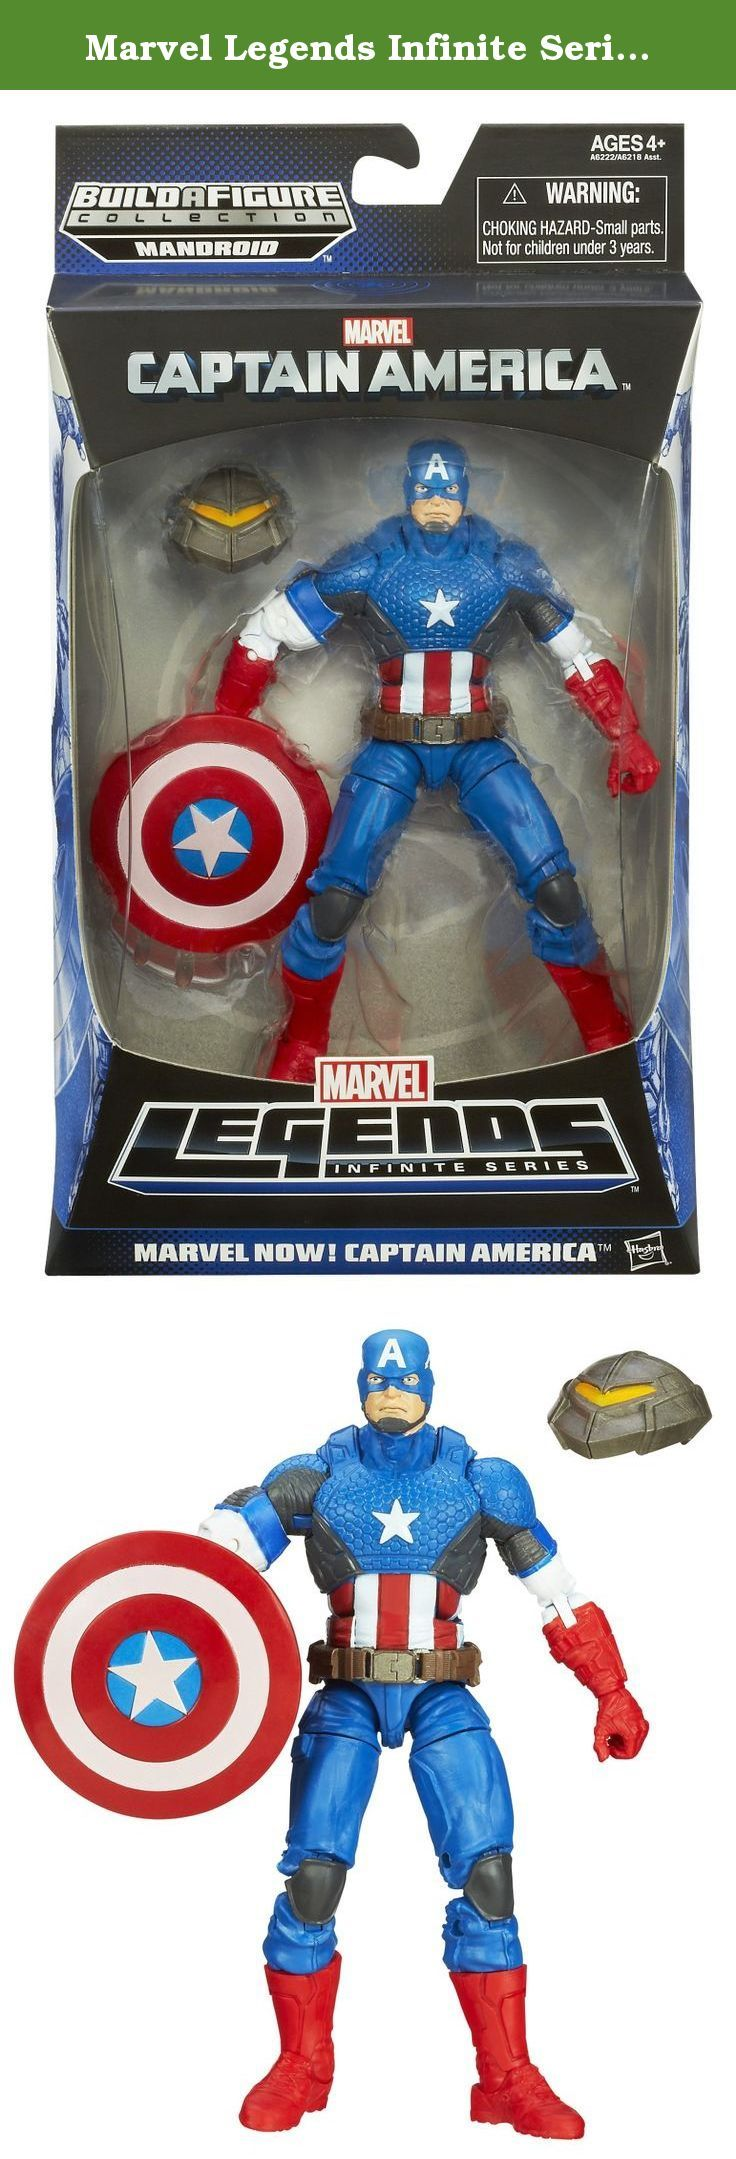 Marvel Legends Infinite Series - Marvel Now 15 Cm Captain America Figure. no matter how often arnim zola's twisted creations beat him down, steve rogers will always stand up! this isn't just any captain america figure! he looks like the patriotic super-soldier, and he defends justice with his vibranium shield. but he also comes with a head that you can use to build a menacing mandroid figure! collect all the parts (other figures sold separately) to complete the armored droid, then send…